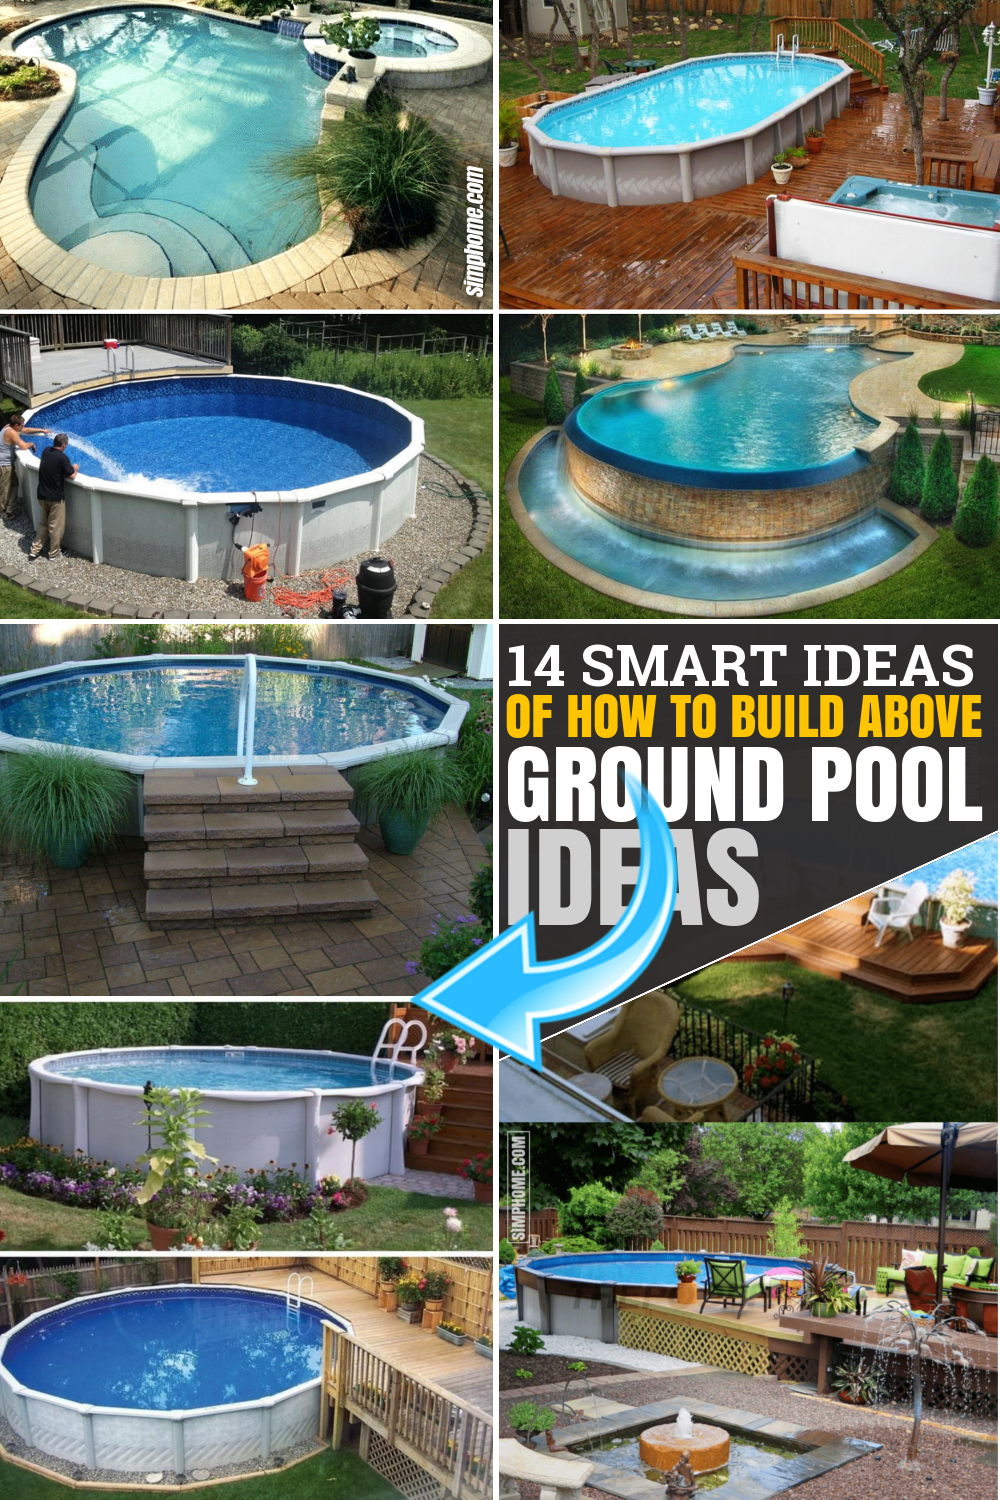 SIMPHOME.COM How to Build Above Ground Pool Backyard Ideas Pinterest Featured Image